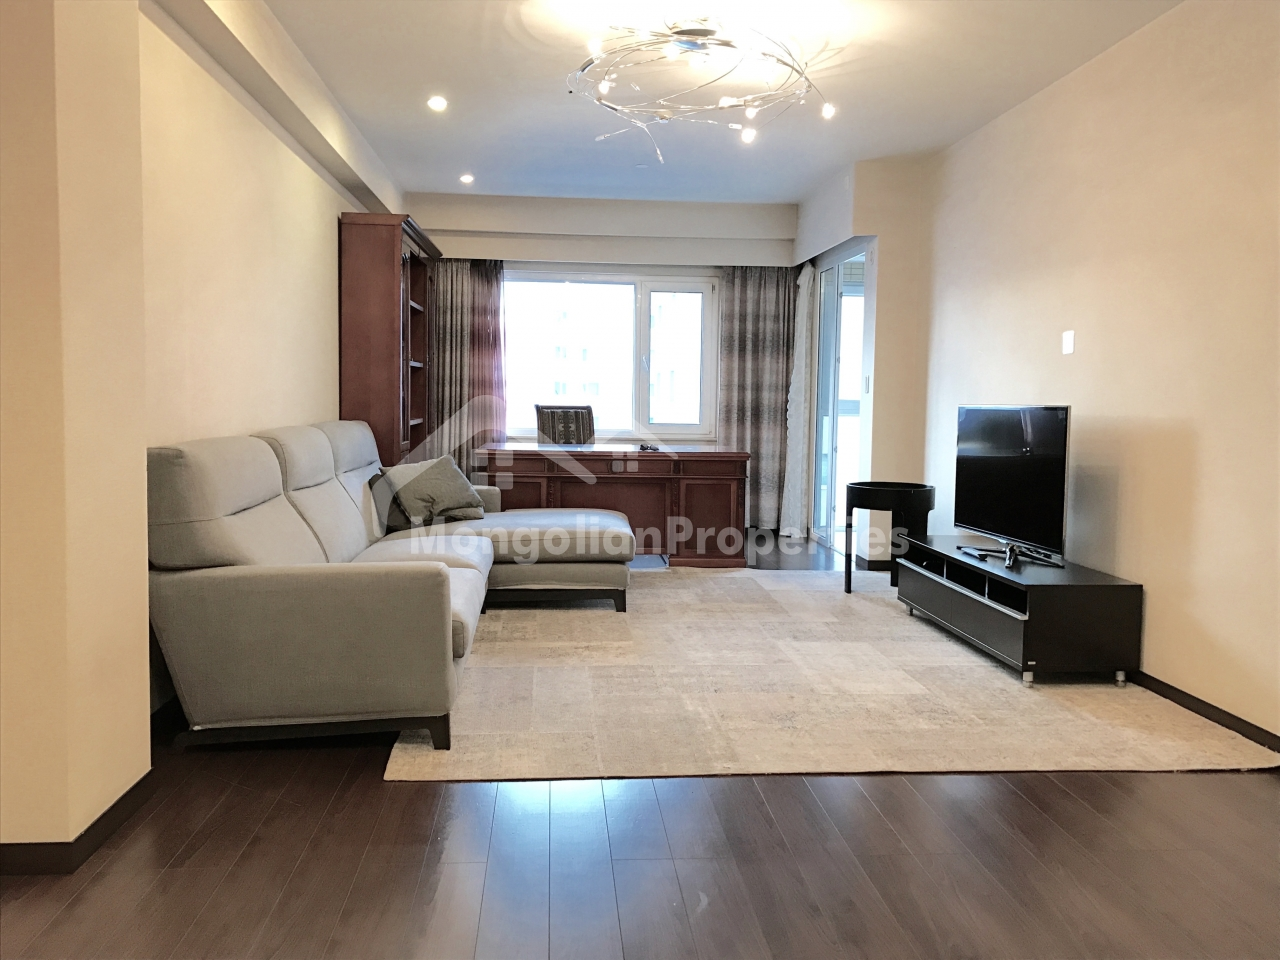 FOR SALE: Japan Town, C3, 102m2, 2bedroom, 1.5bath apartment on the 4th floor